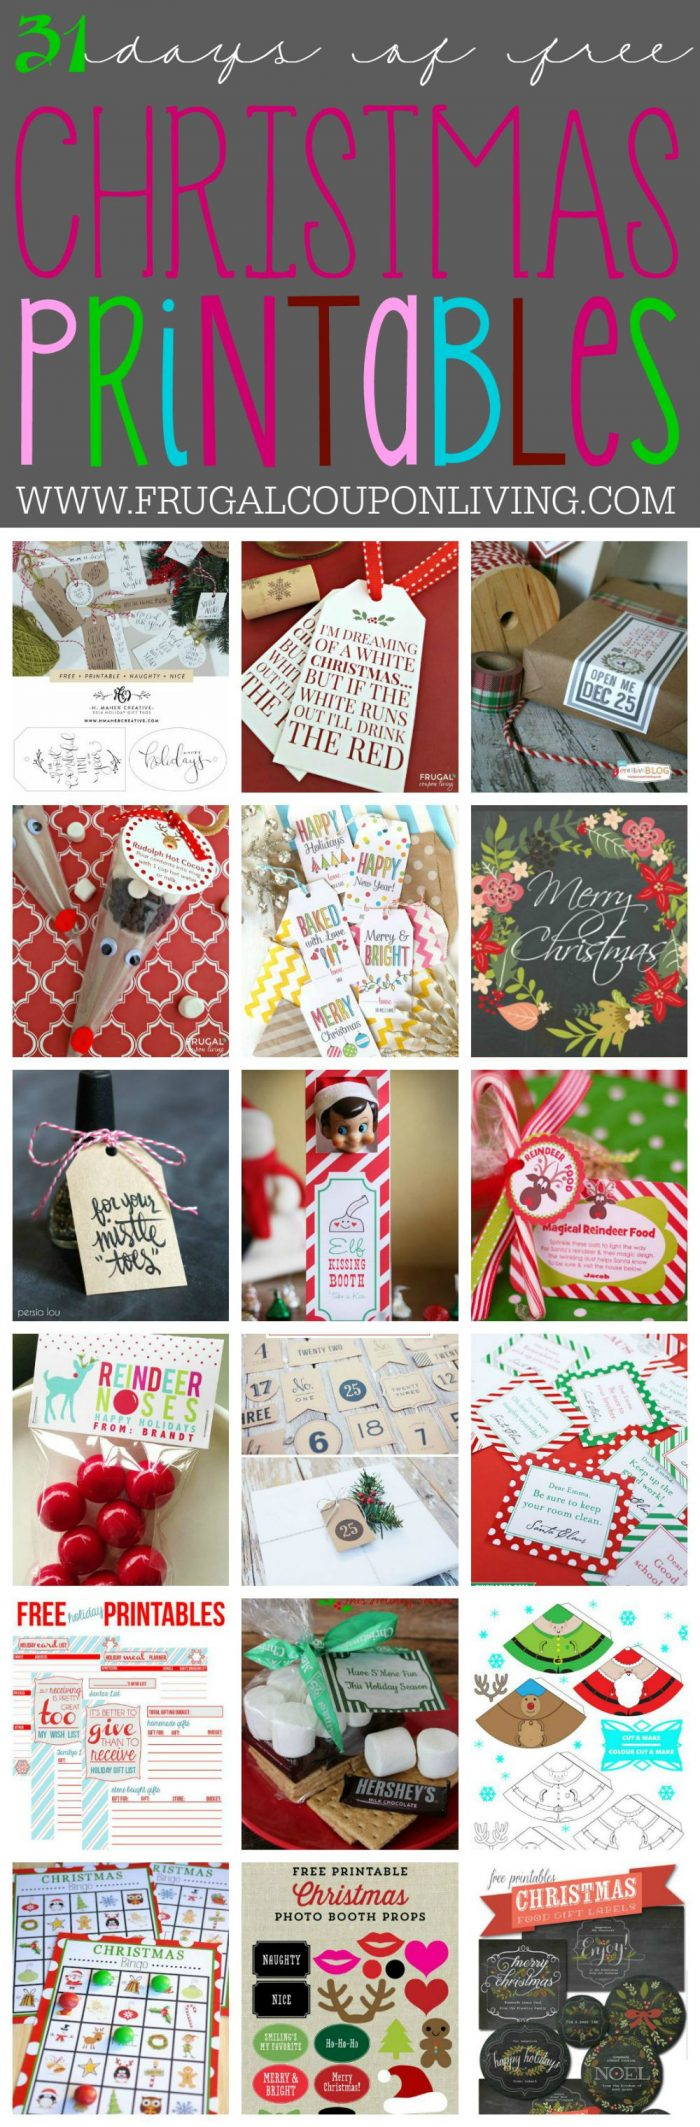 31 days of Free Christmas Printables on Frugal Coupon Living